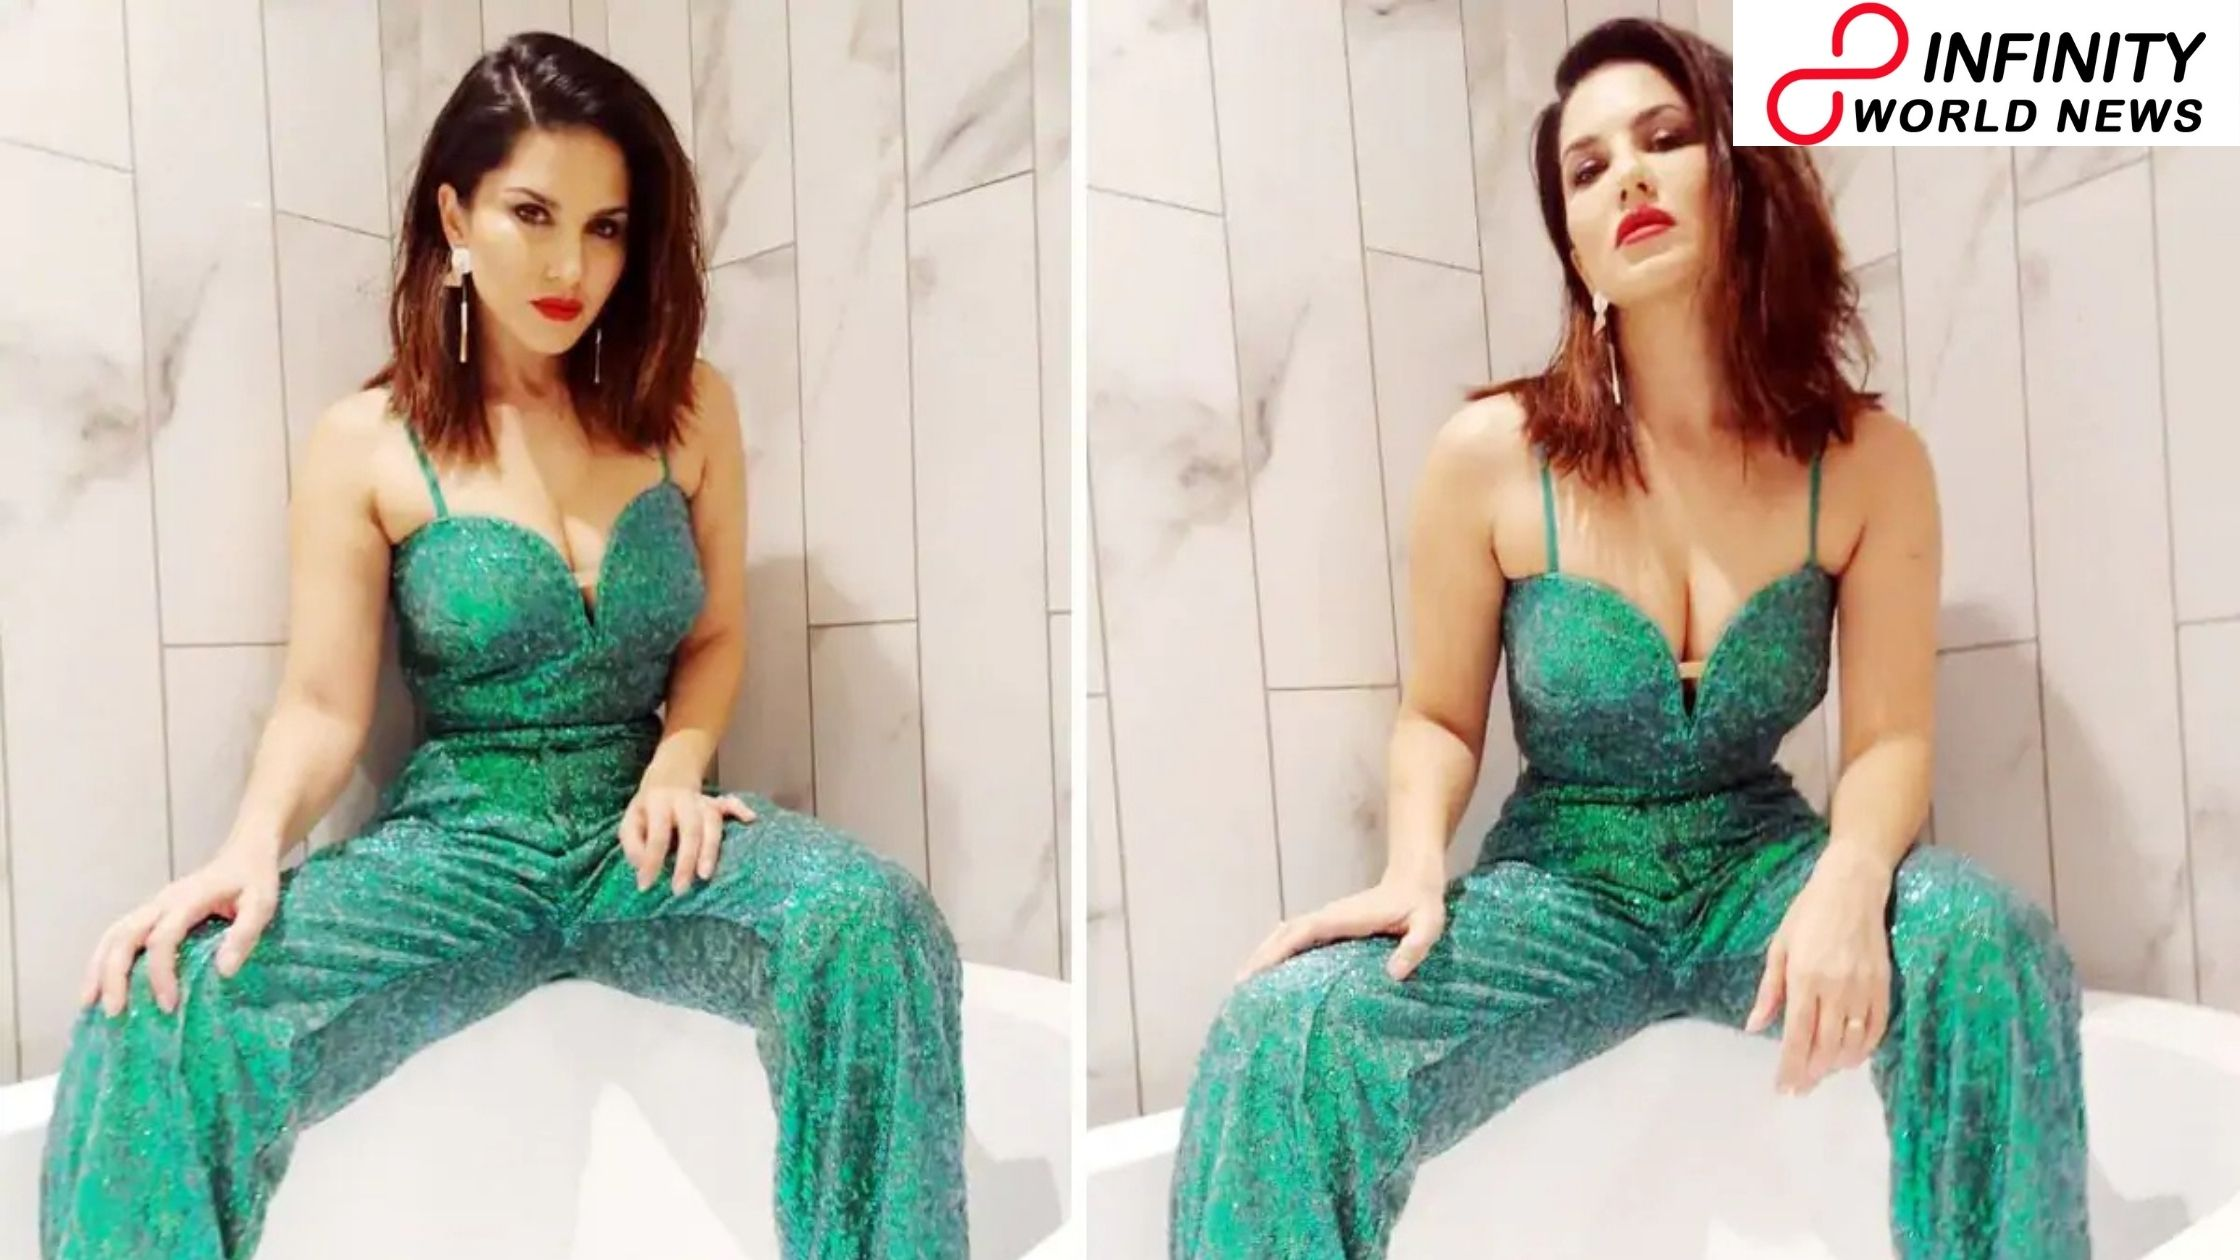 Sunny Leone Poses into a Bathtub Wearing a Sparkly Jumpsuit Including a Plunging Neckline – See Viral Pics